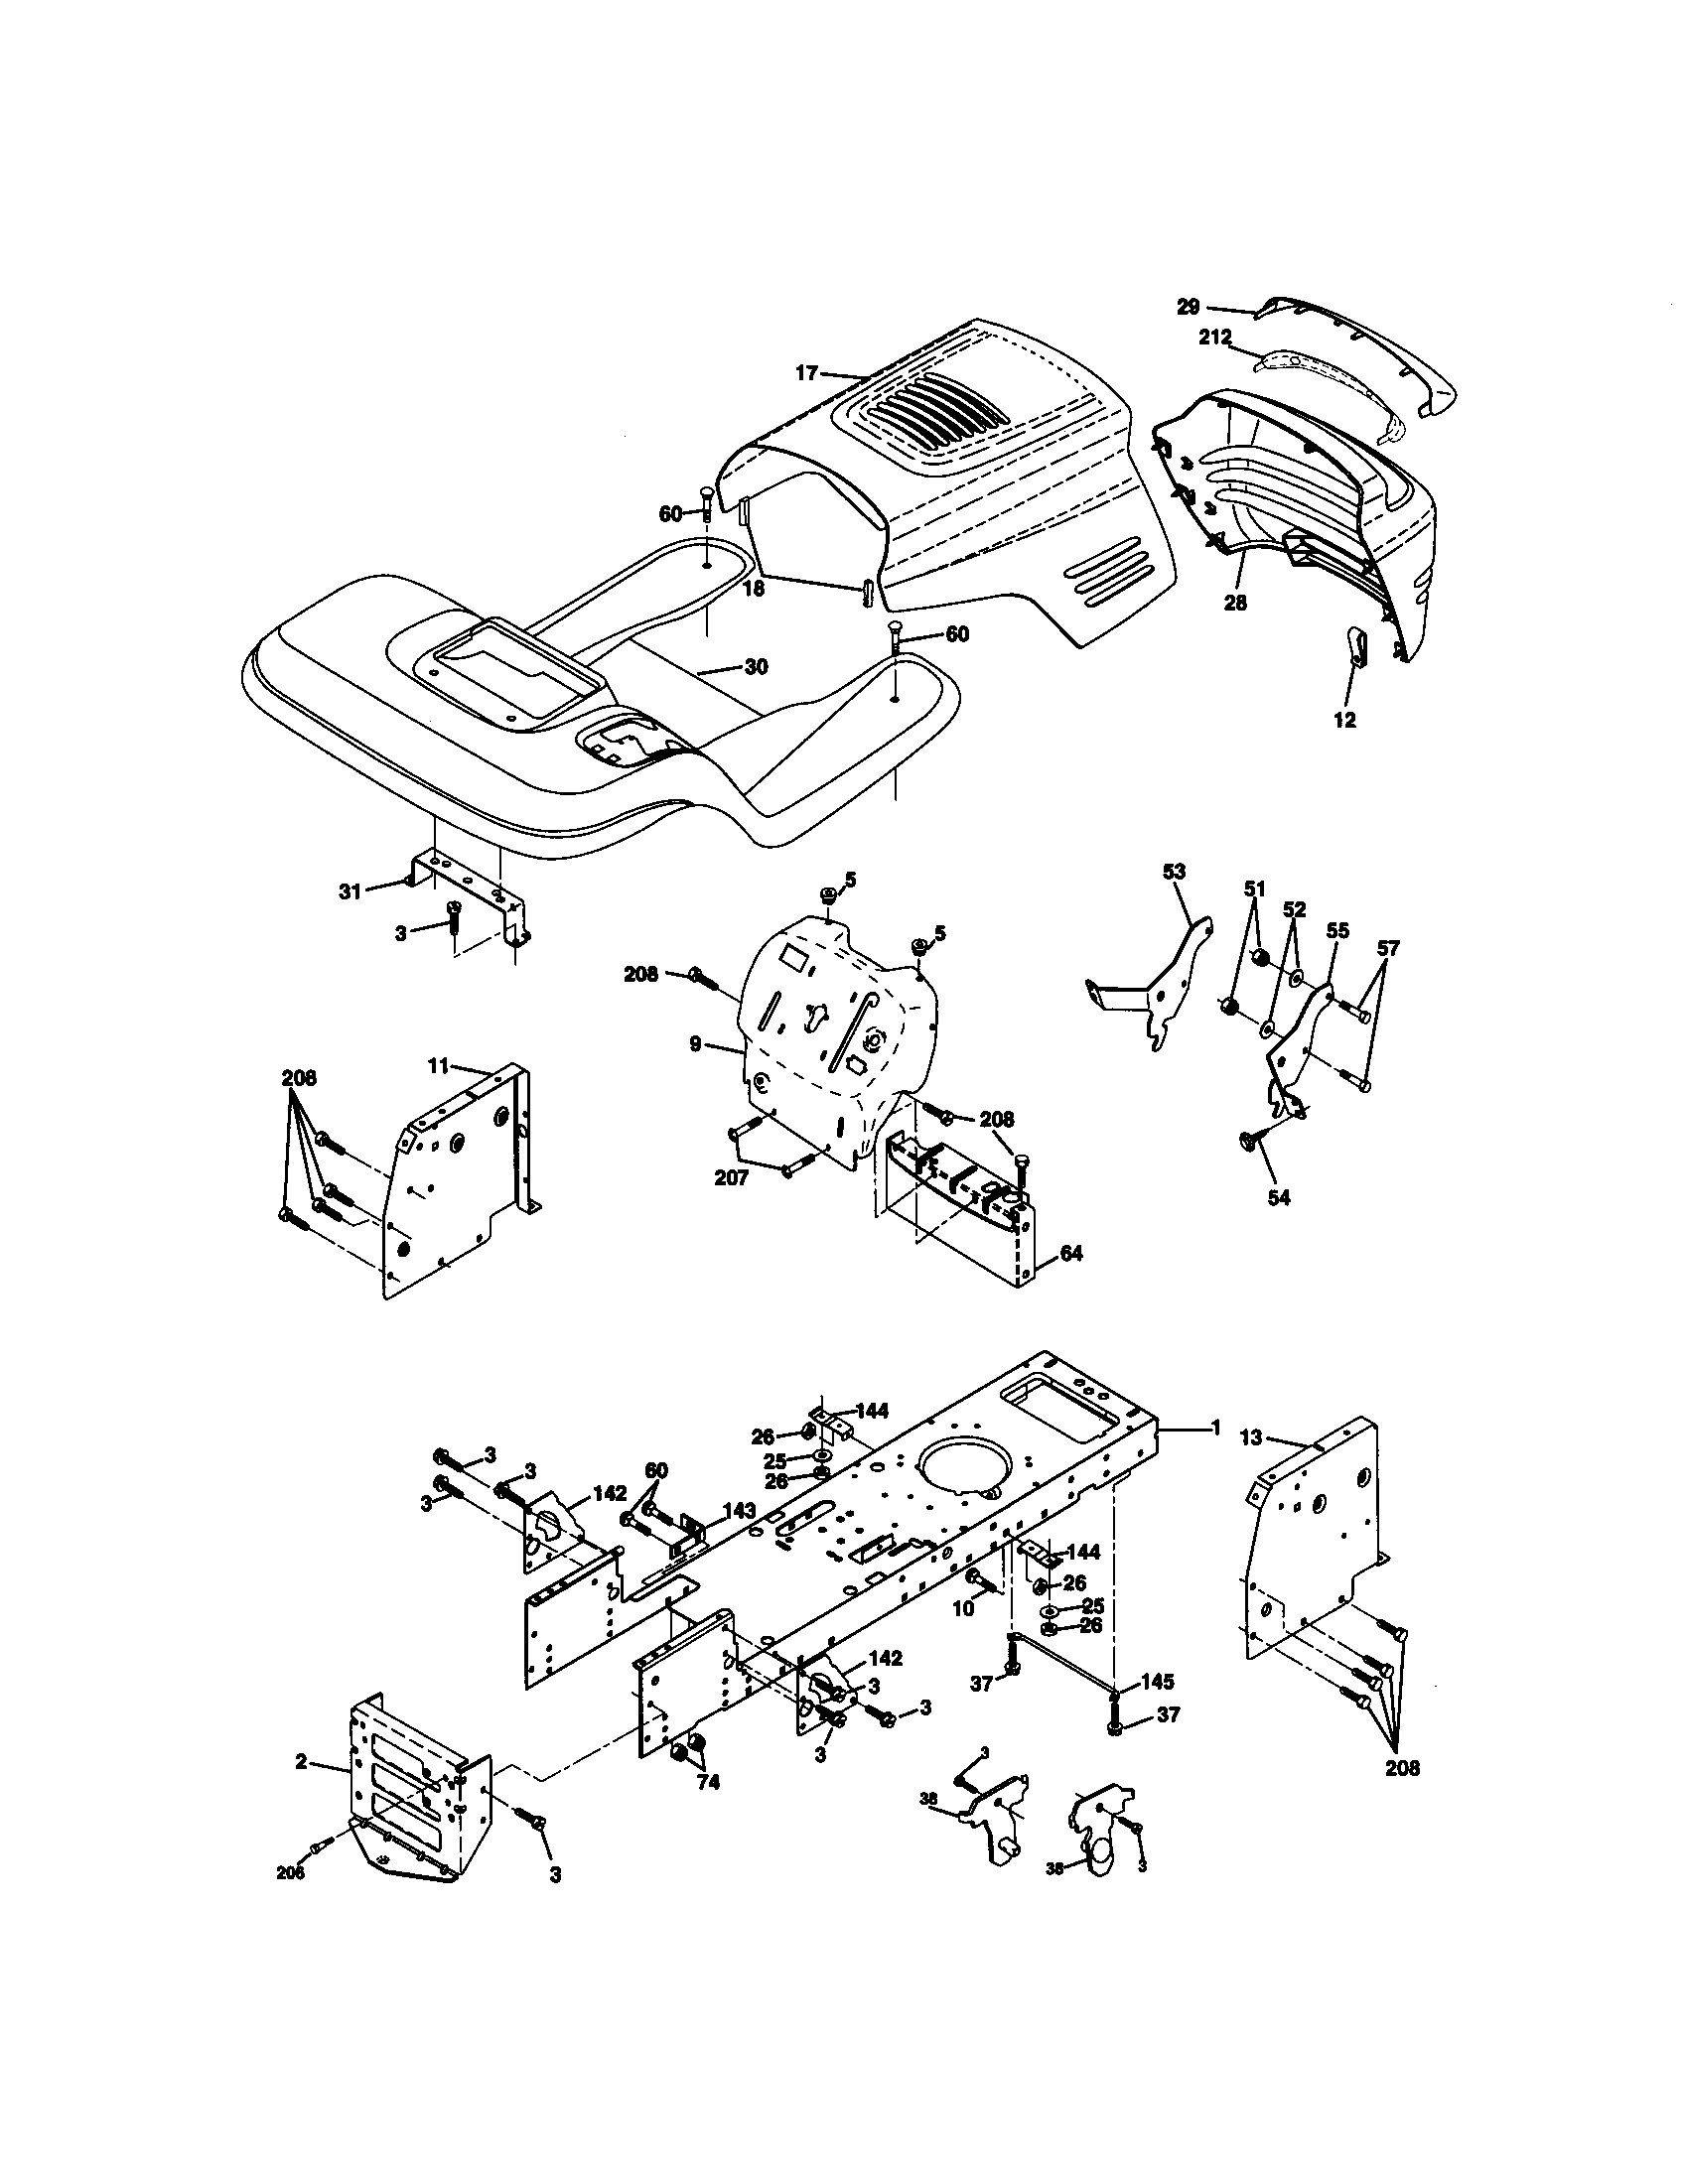 Kohler Command 15.0hp Ohv Wiring Diagram